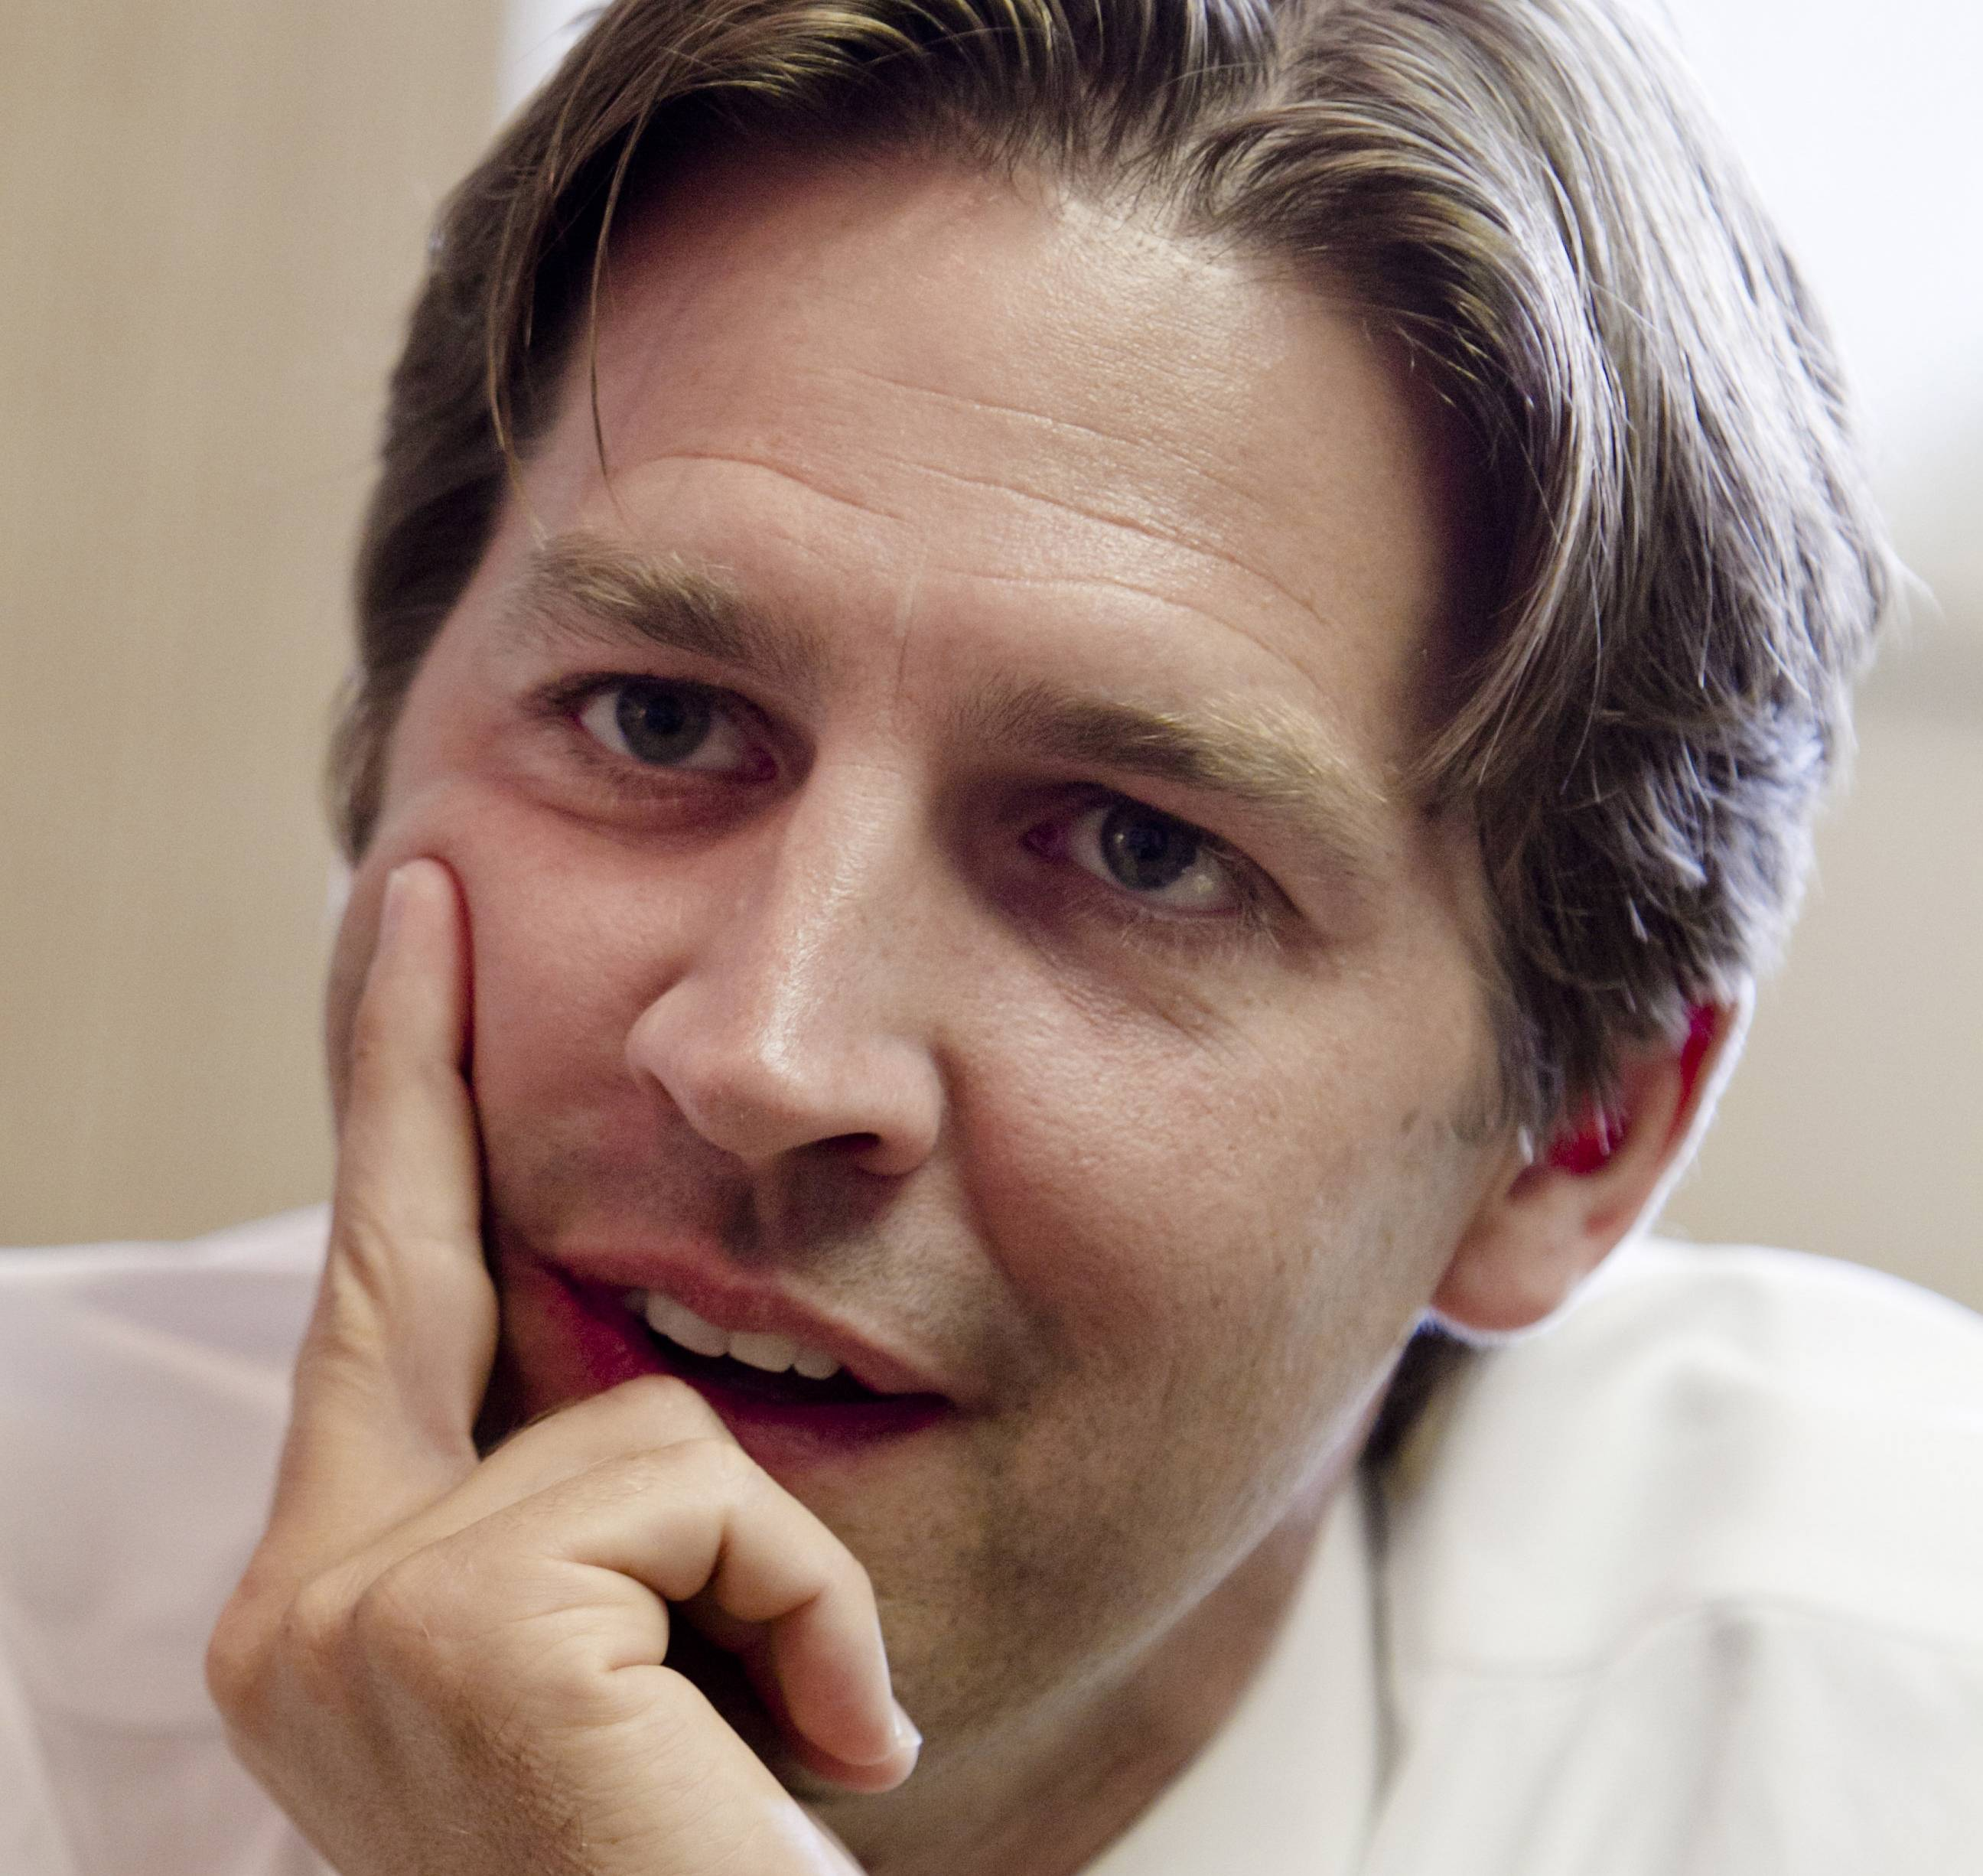 Nebraska Republican Senate candidate Ben Sasse, a Tea Party favorite, won the GOP nomination Tuesday.